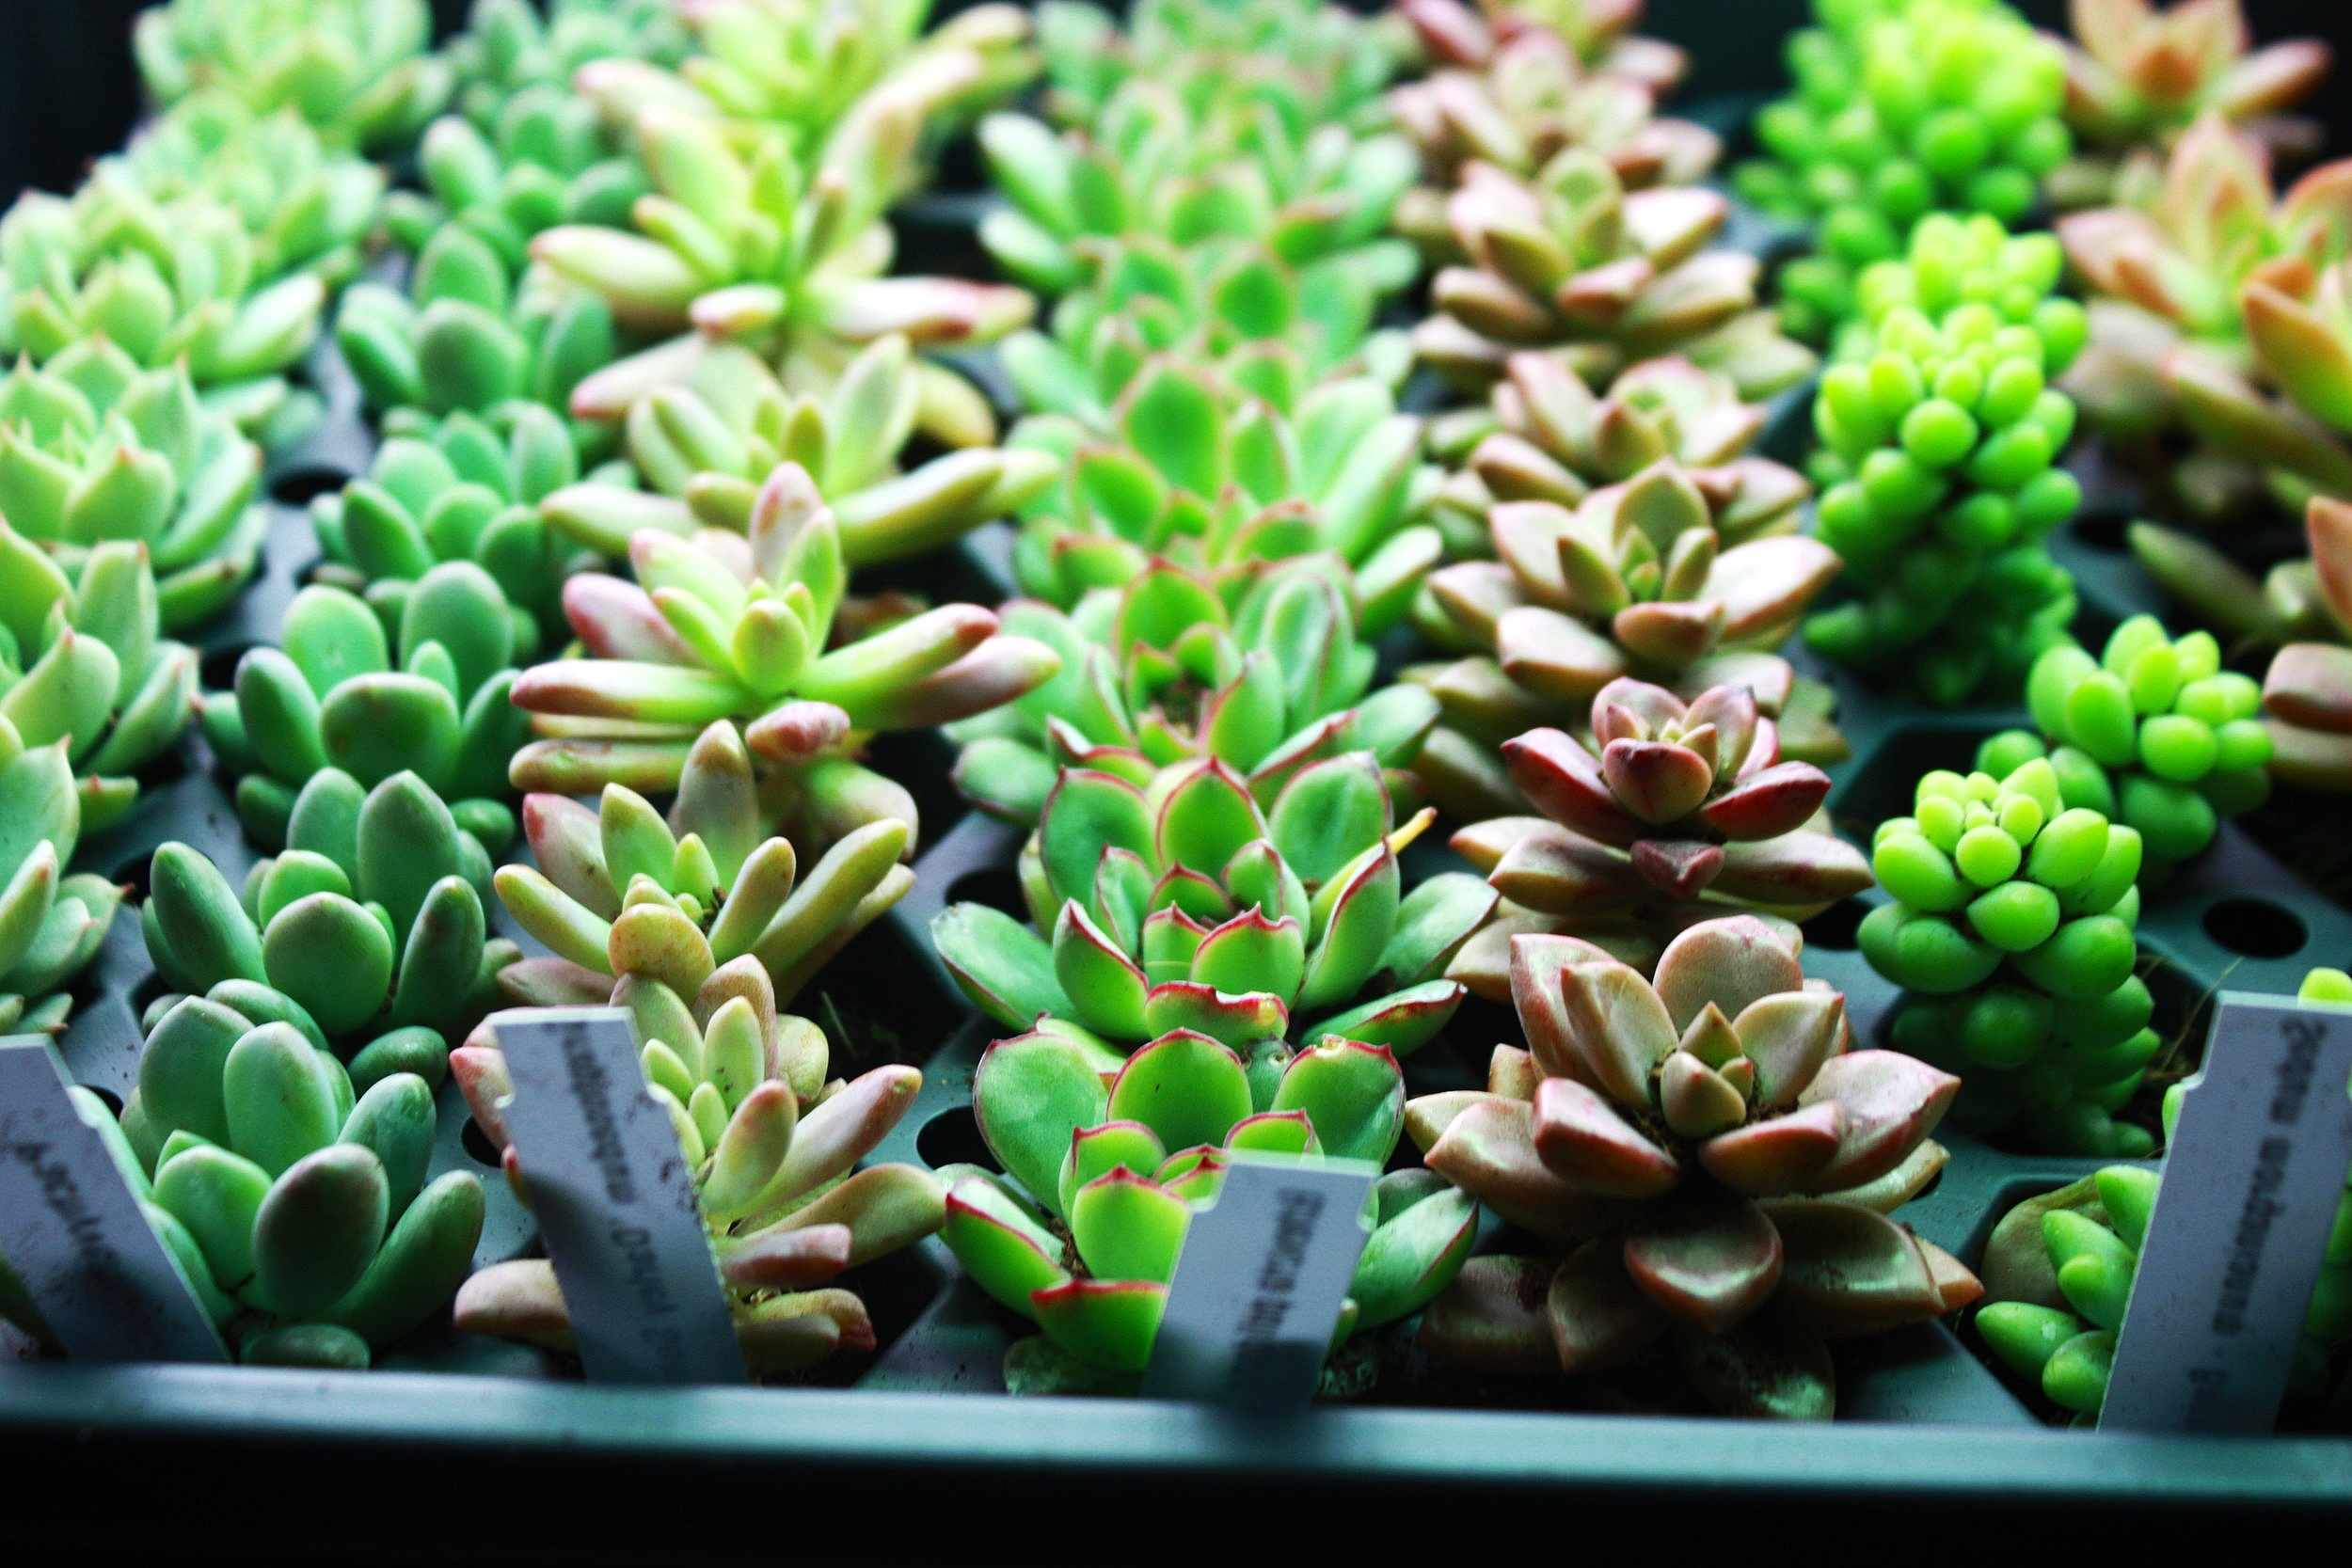 Rows of small succulents on display at Grow Vermont to be used at a future Plant & Sip event.